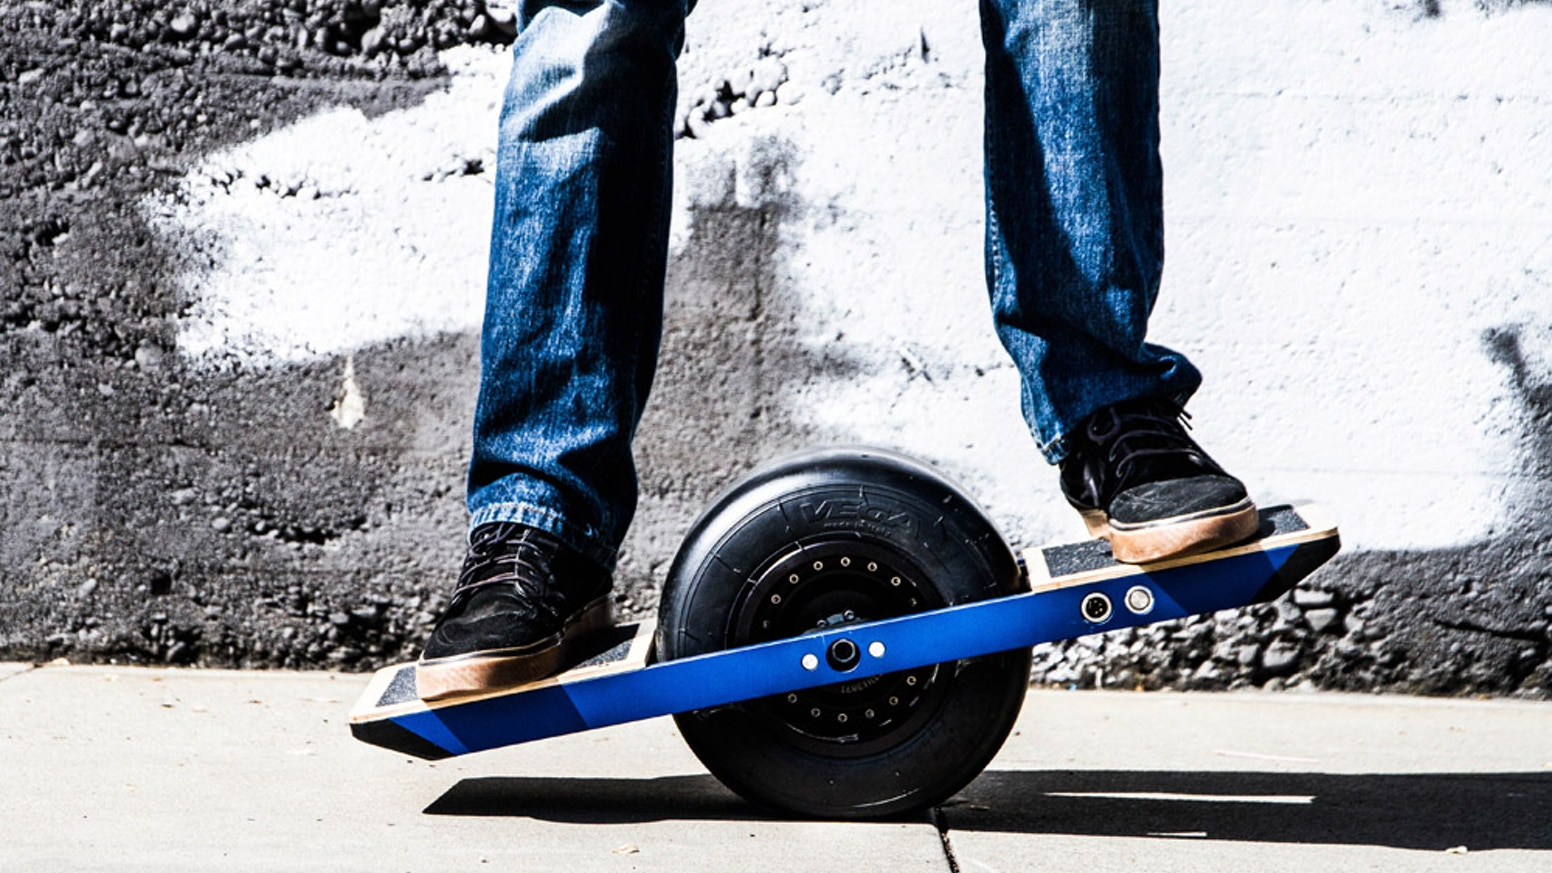 Onewheel: the revolutionary electric boardsport that gives you the feeling of flying